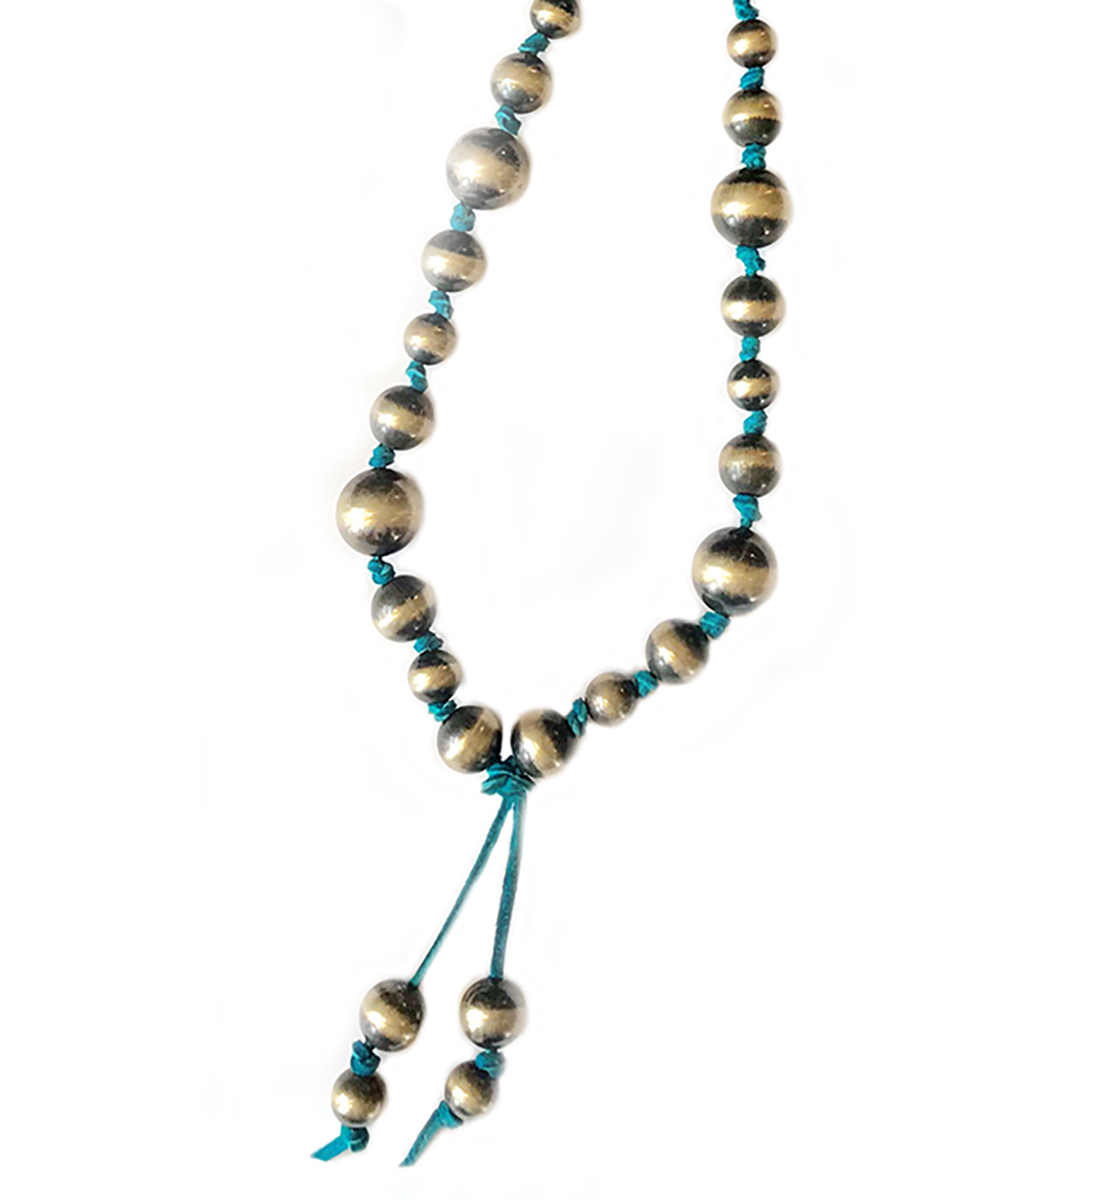 Silver Beads On Turquoise Leather Necklace